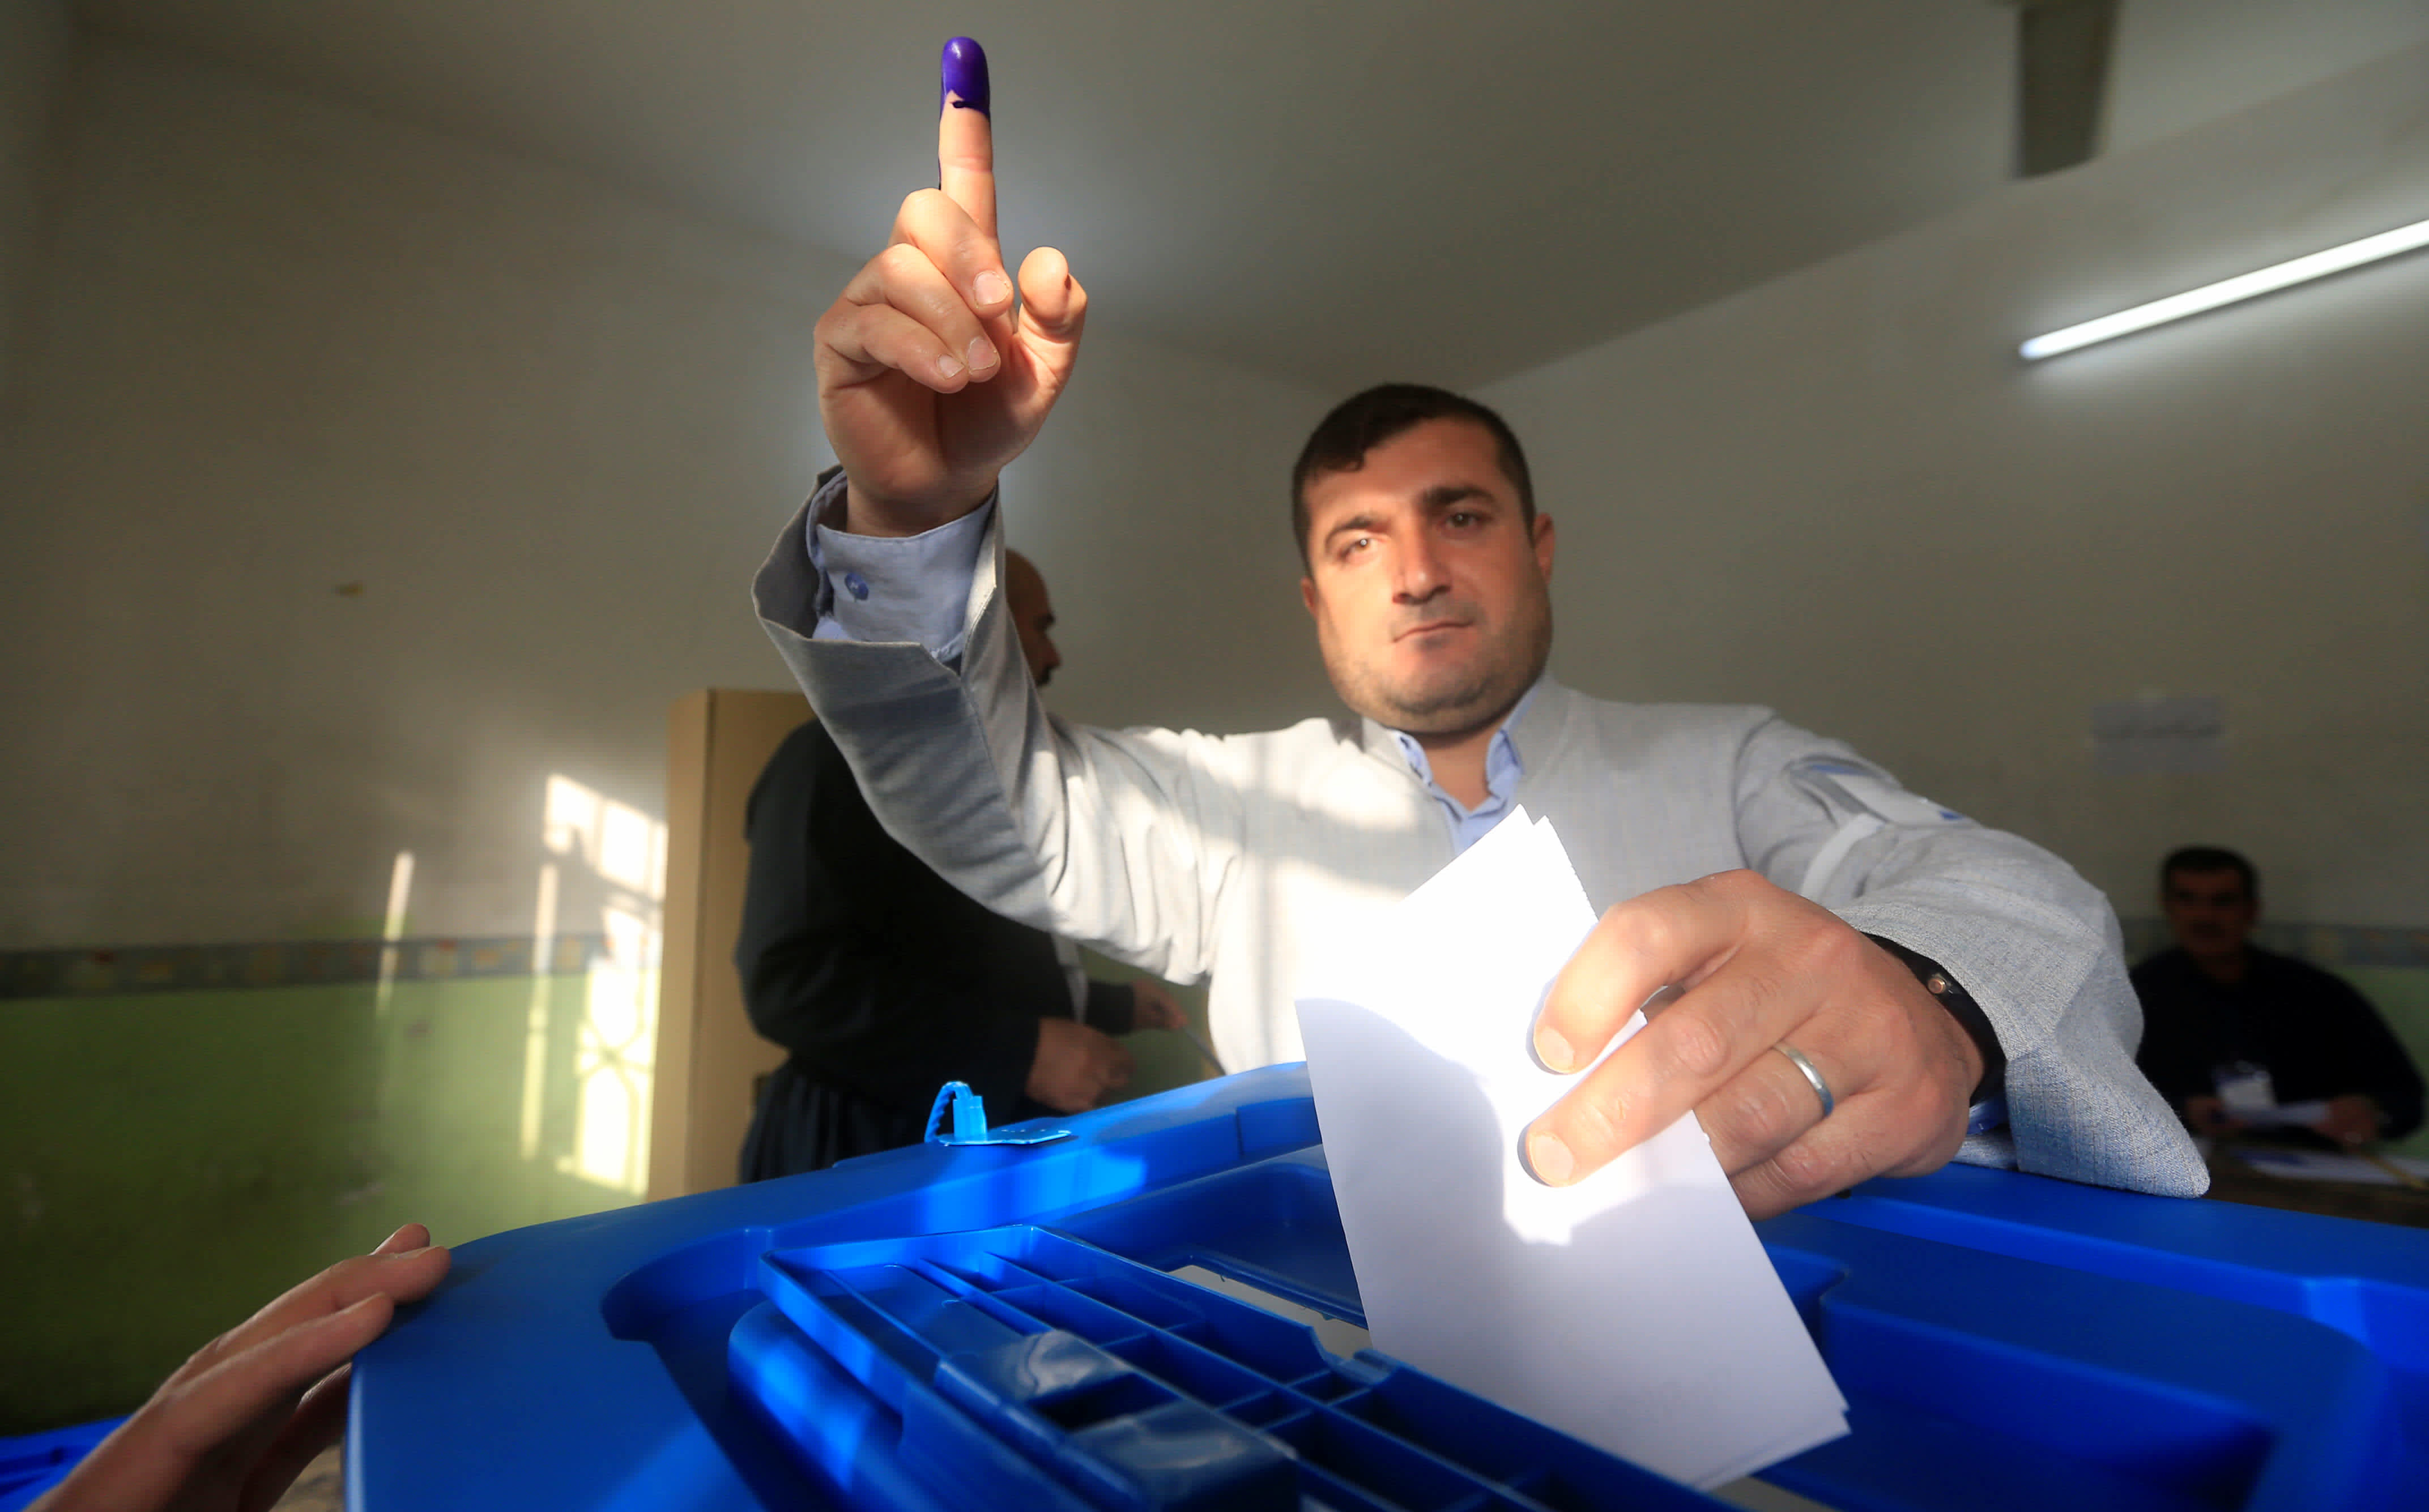 A man casts his vote during Kurds independence referendum in Halabja, Iraq September 25, 2017. (Reuters)